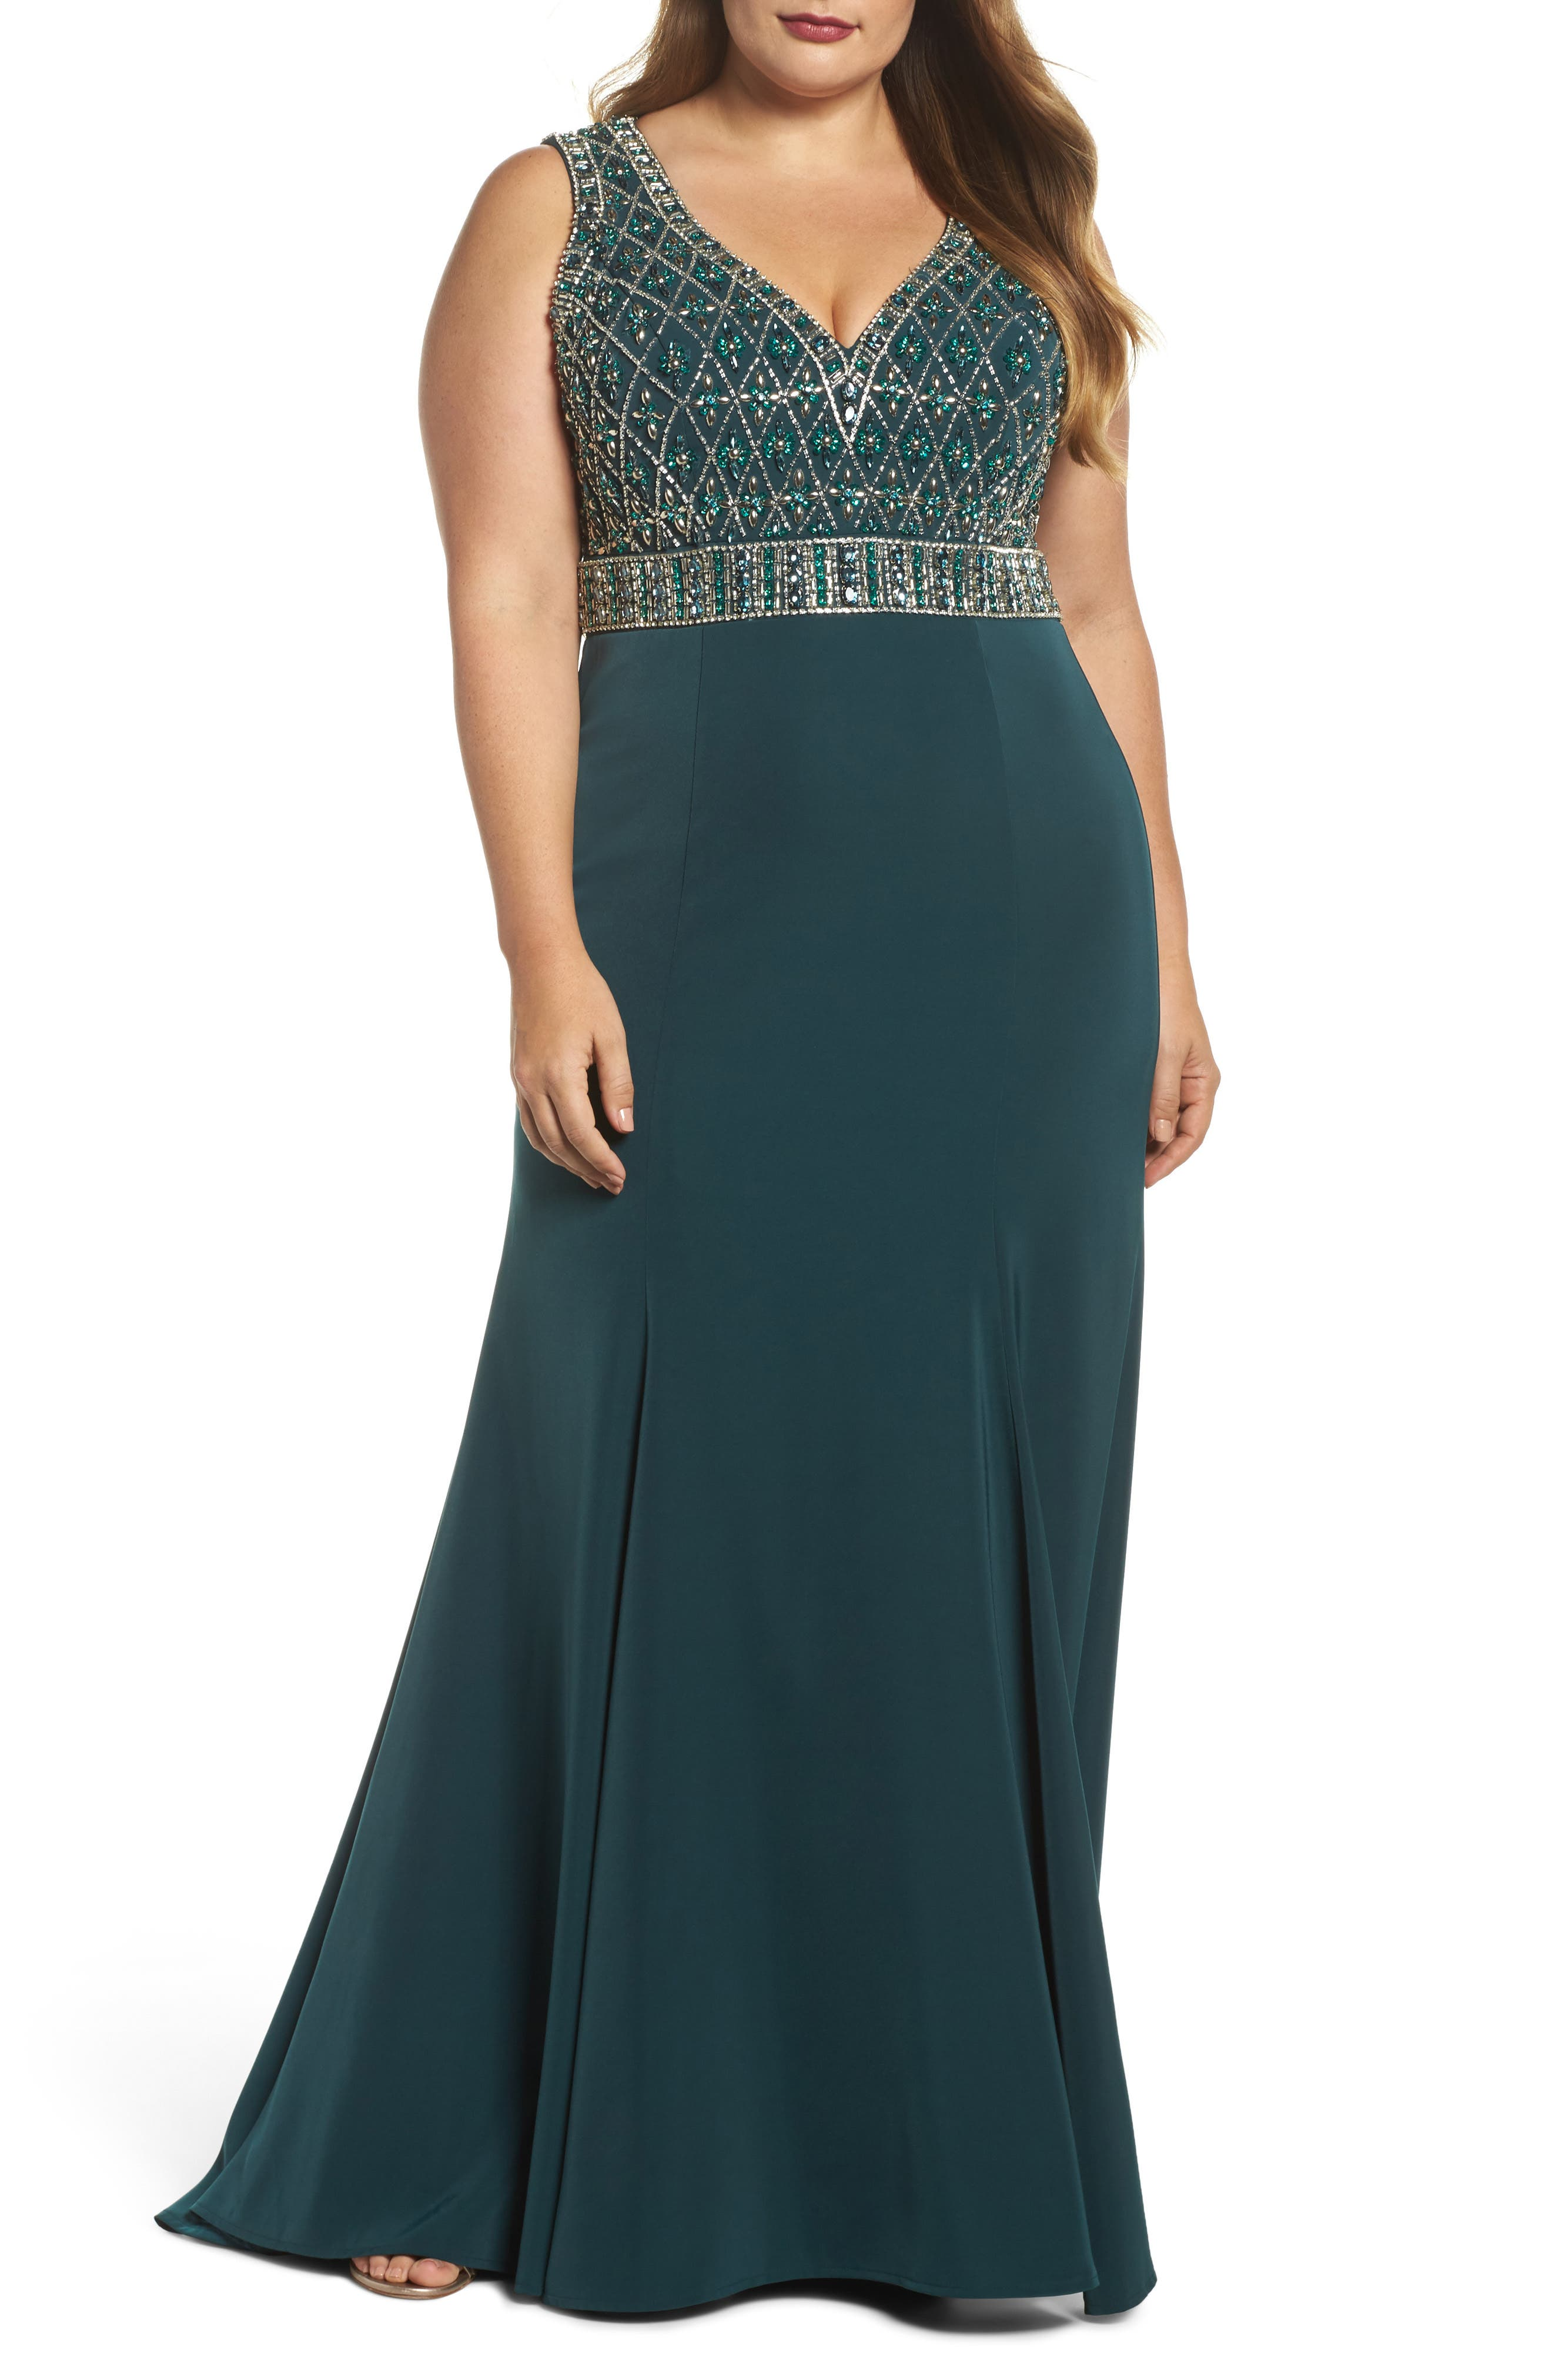 Crystal Embellished Ballgown,                             Main thumbnail 1, color,                             DEEP EMERALD